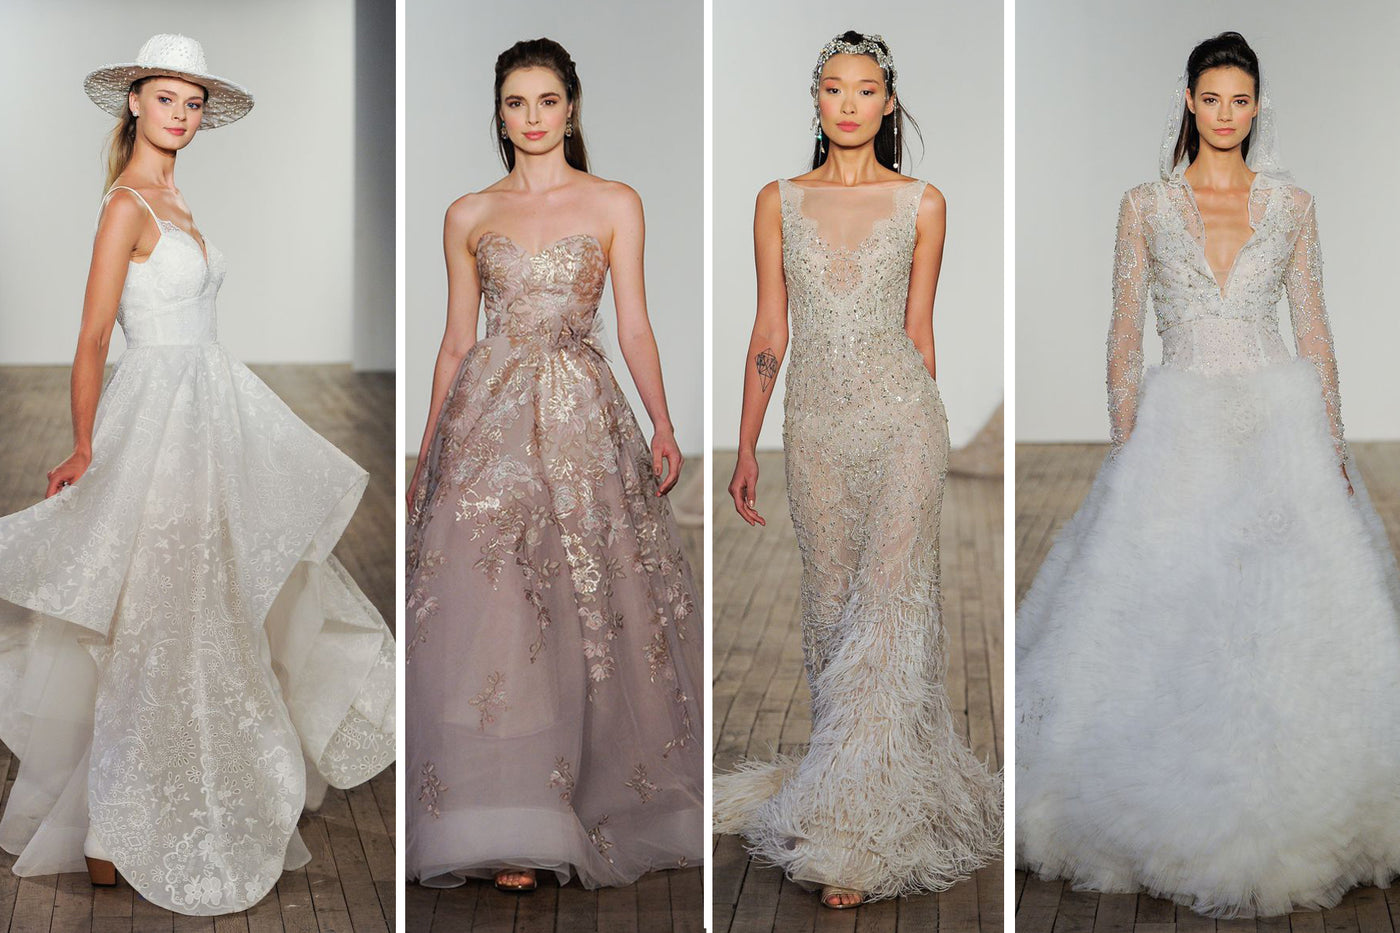 eternal-bridal-jlm-2020-trends-new-york-bridal-fashion-week